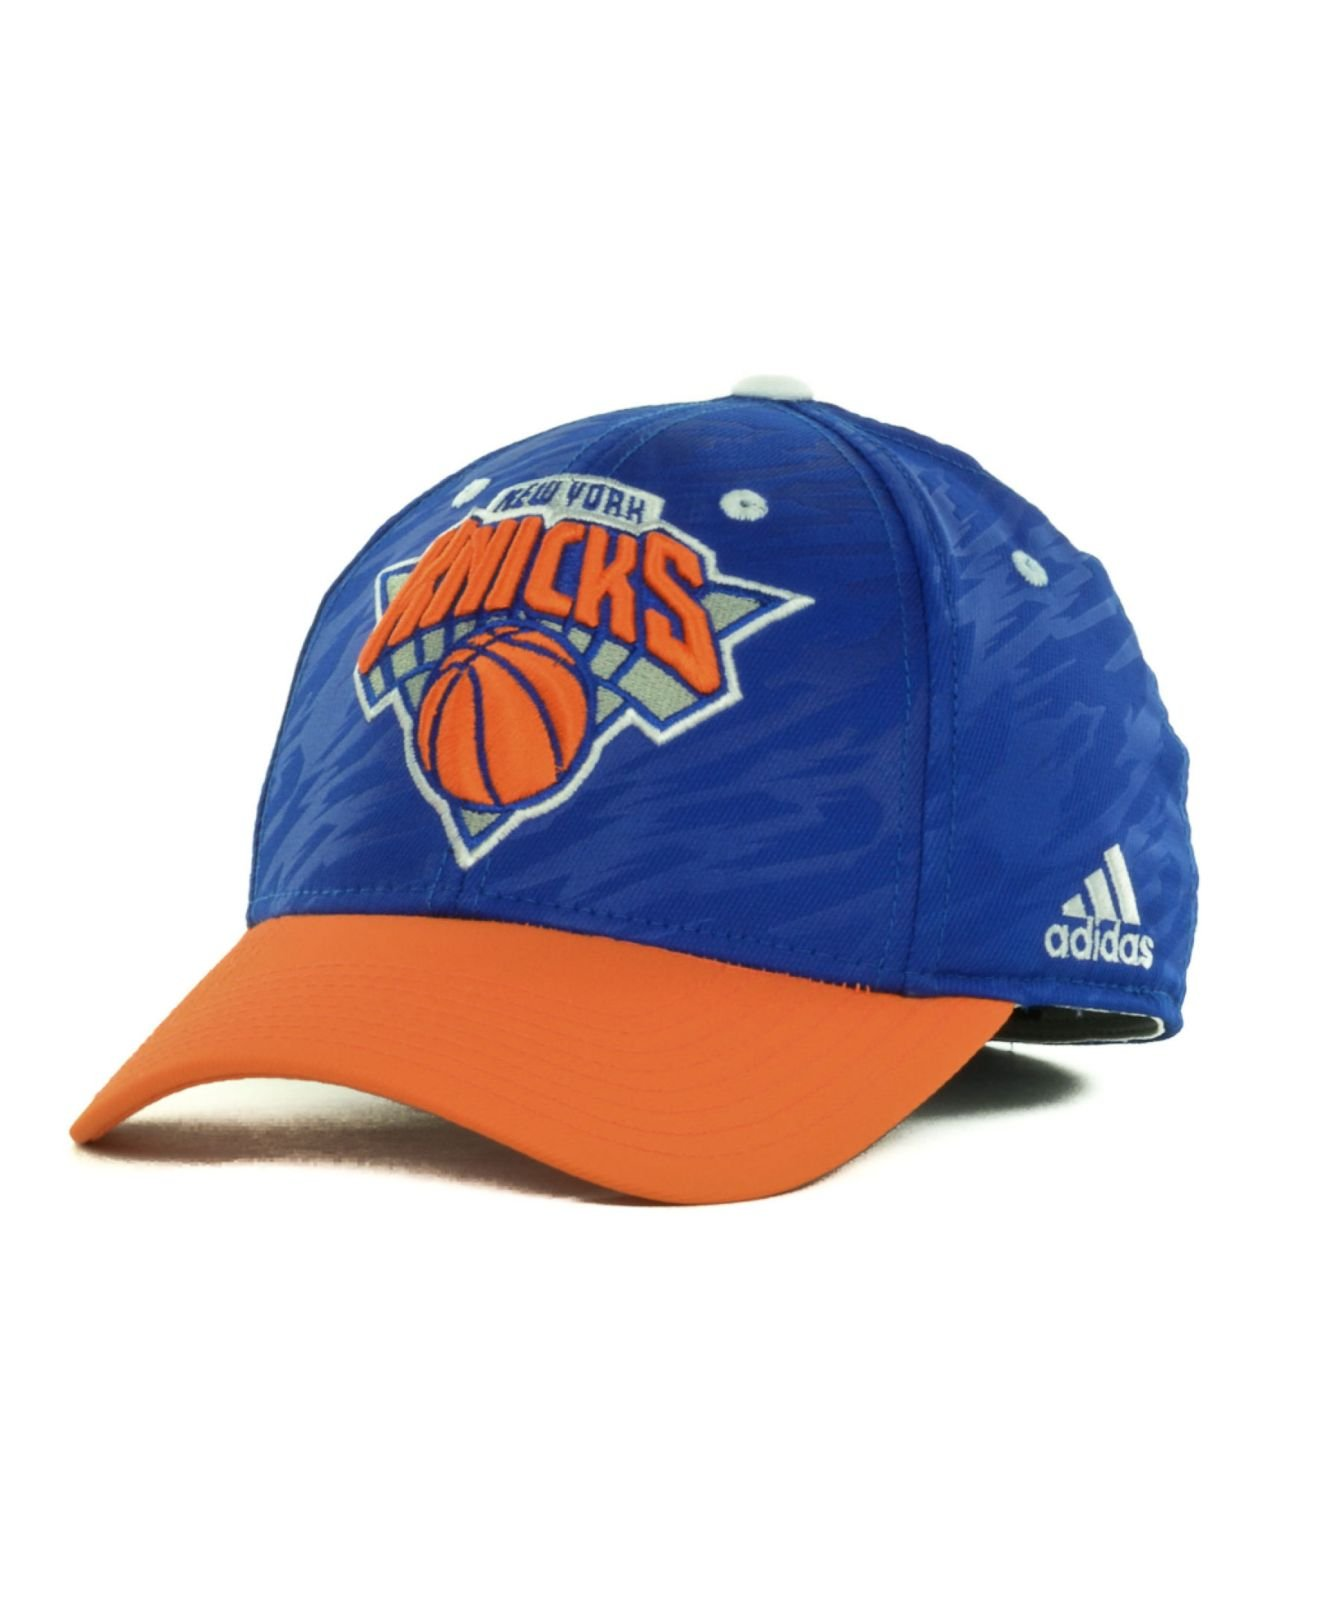 best sneakers d5840 76c78 canada samoa joe wwe custom 9fifty snapback cap 2083d 607bd  inexpensive  lyst adidas new york knicks courtside 1314 cap in blue for men 1d5ba 62ede